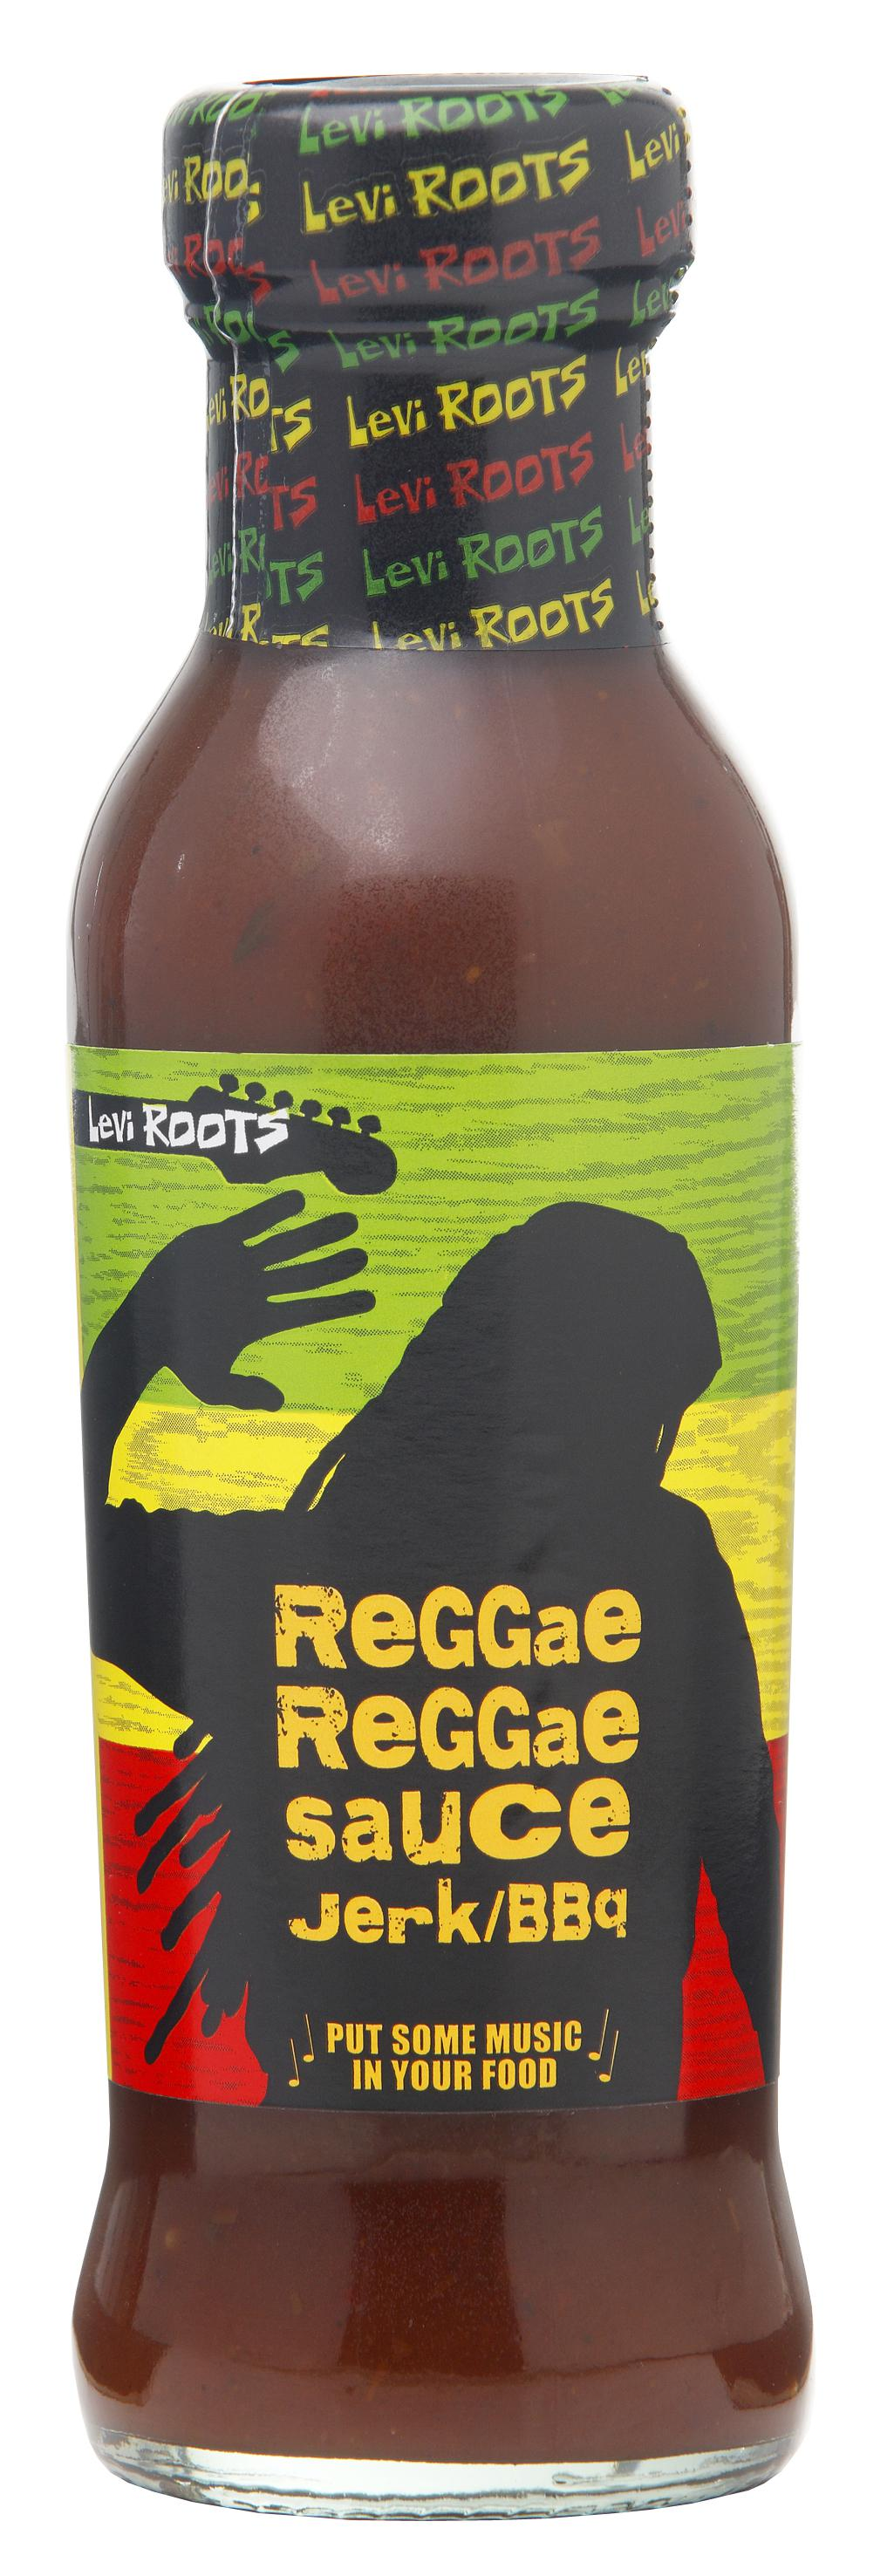 how reggae reggae sauce Dragons' den legend levi roots has lost the taste for his classic reggae reggae sauce song which helped him cook up a £37million fortune.